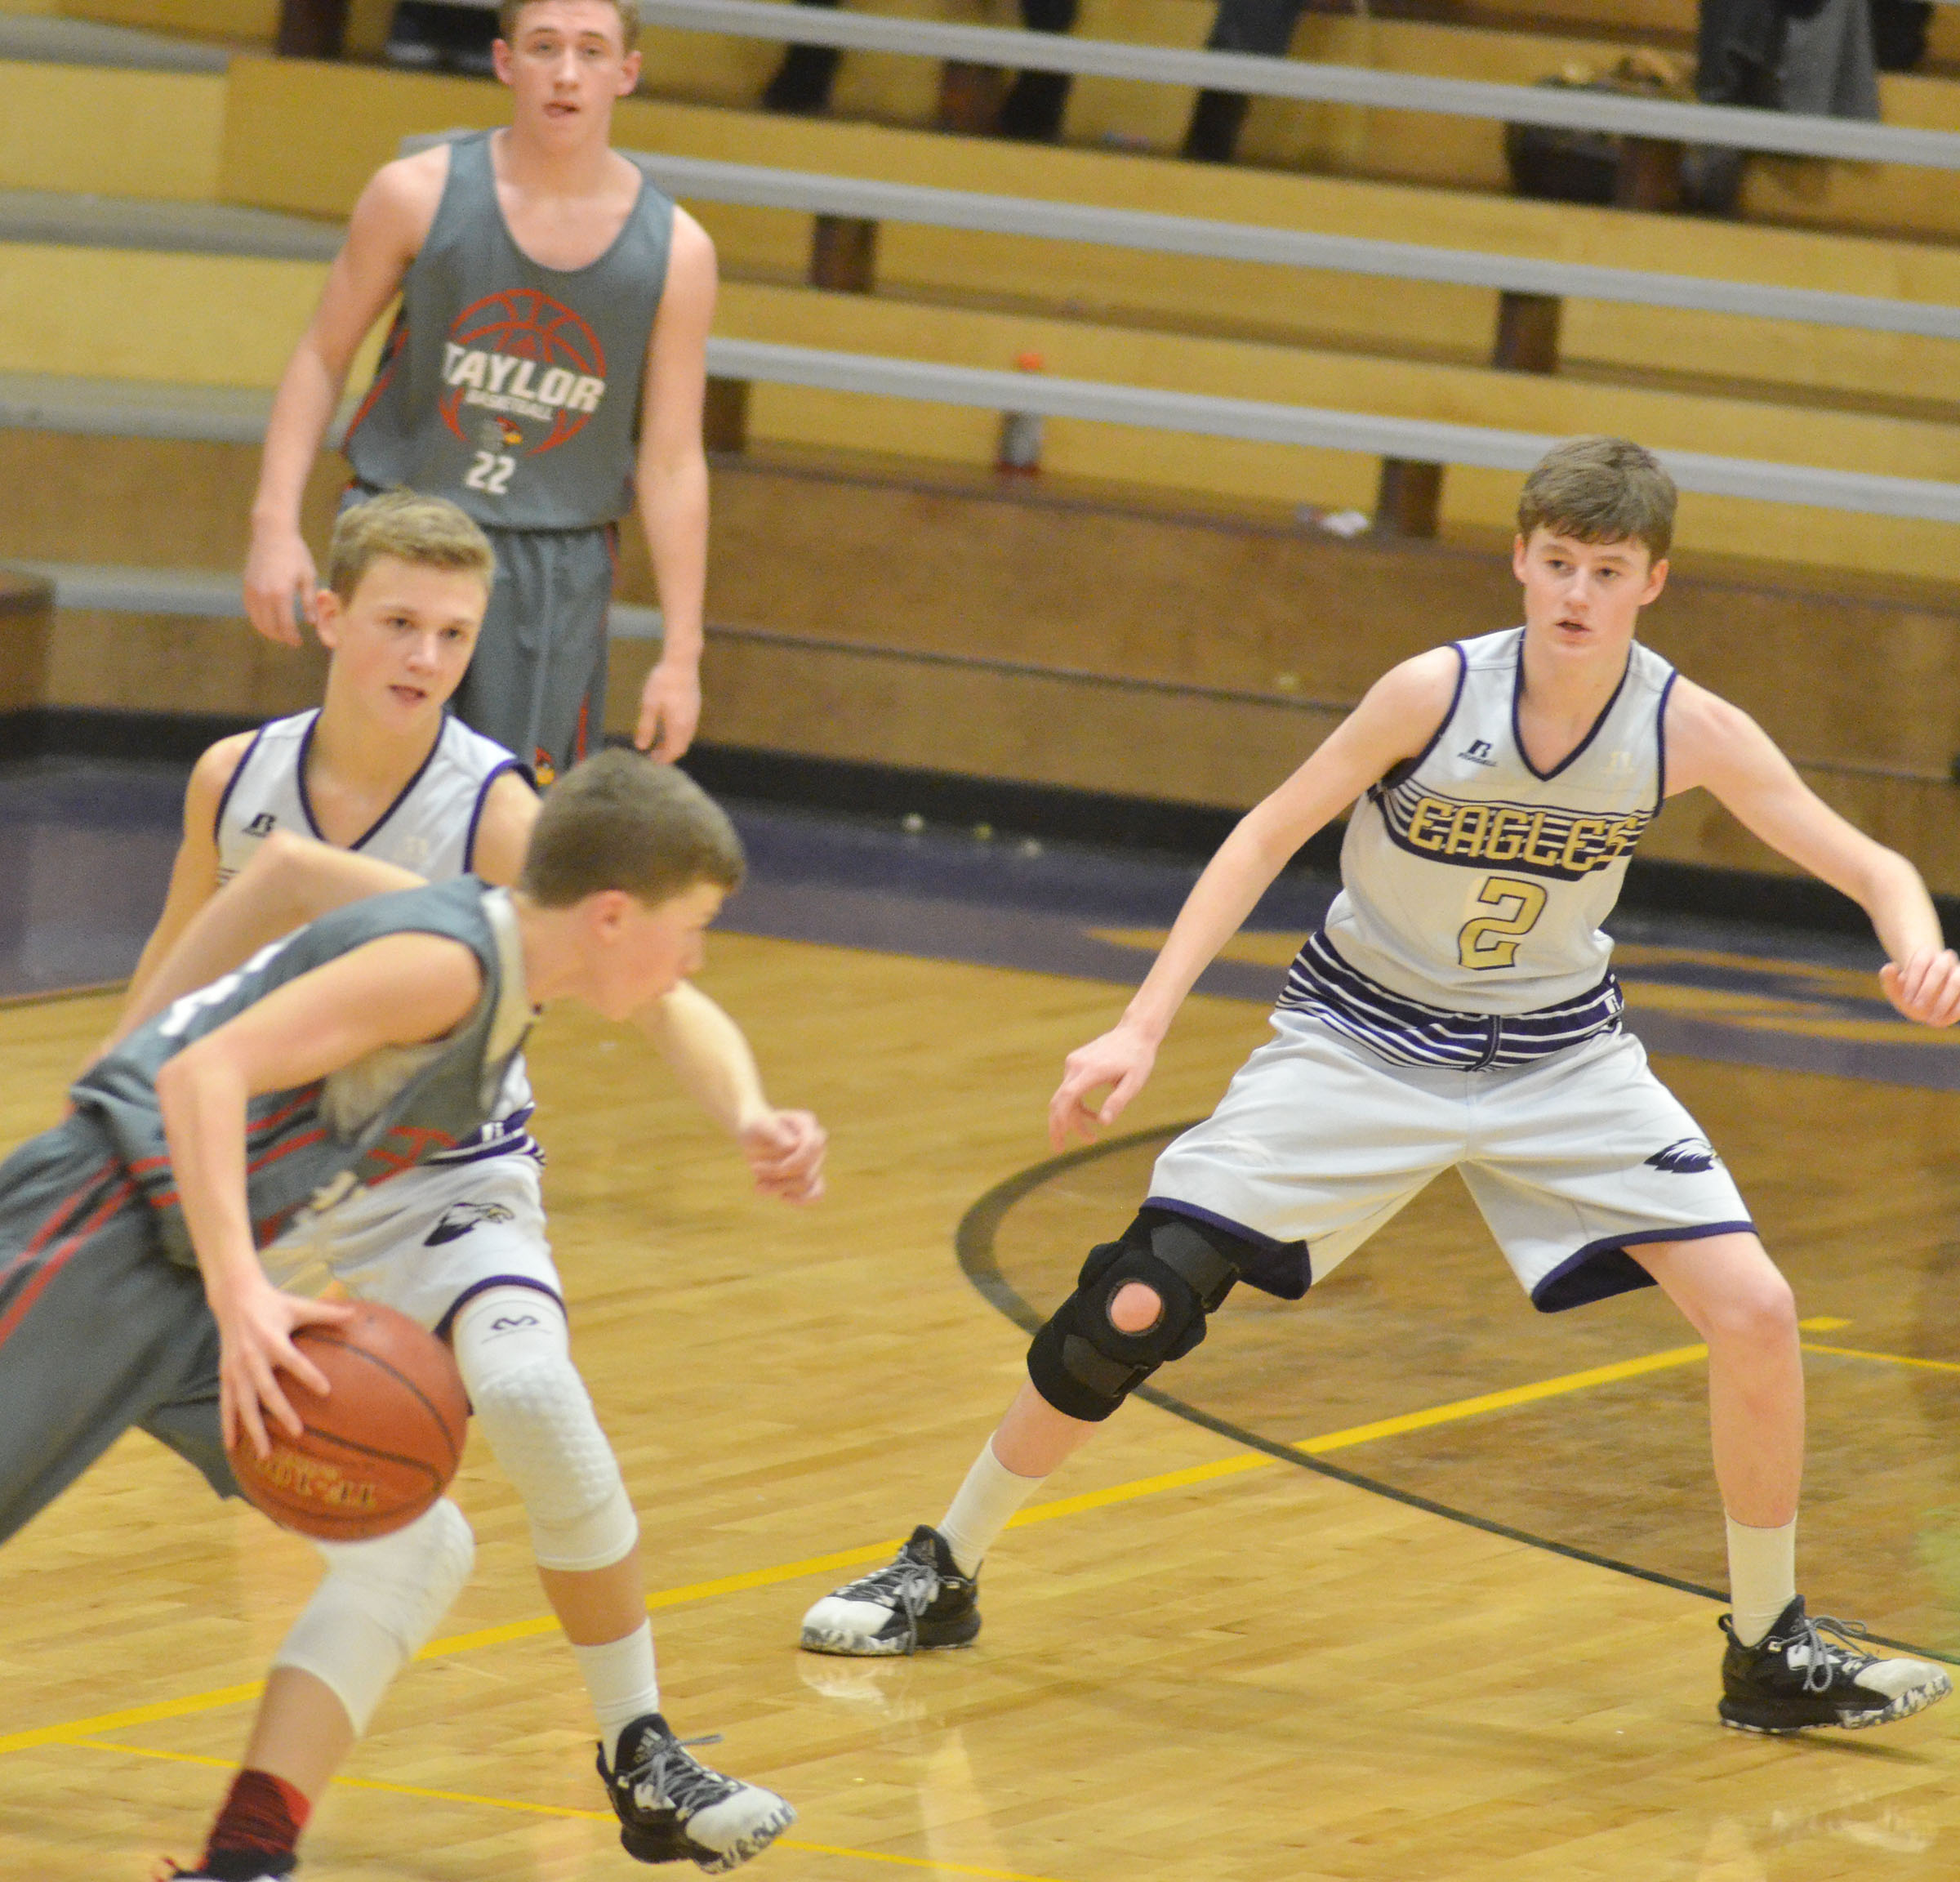 CMS eighth-graders Blase Wheatley, at left, and Tristin Faulkner play defense.